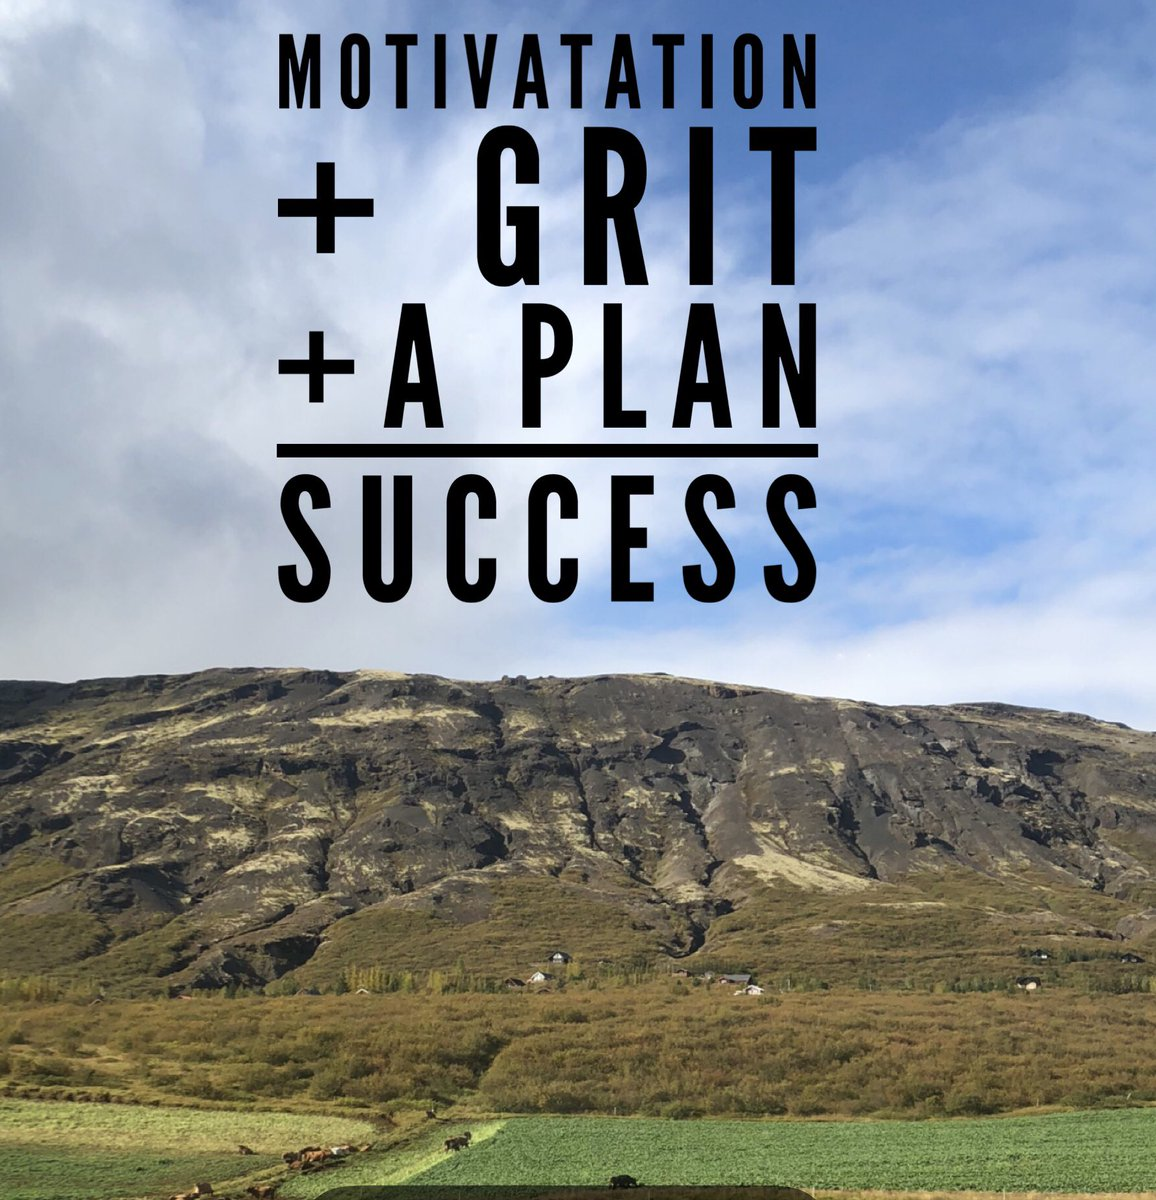 Motivation + Grit + a Plan =SUCCESS. #whatsyourmotivation #howsyourgrit #whatsyourplan #create #success #acceptyourmission #knowyourvalues #clarity #getaplan #actionplan #mission #passion #vision #plan #whatsyourmission #whatsyourvision  #actionsteps #motivation #womenwhohustle